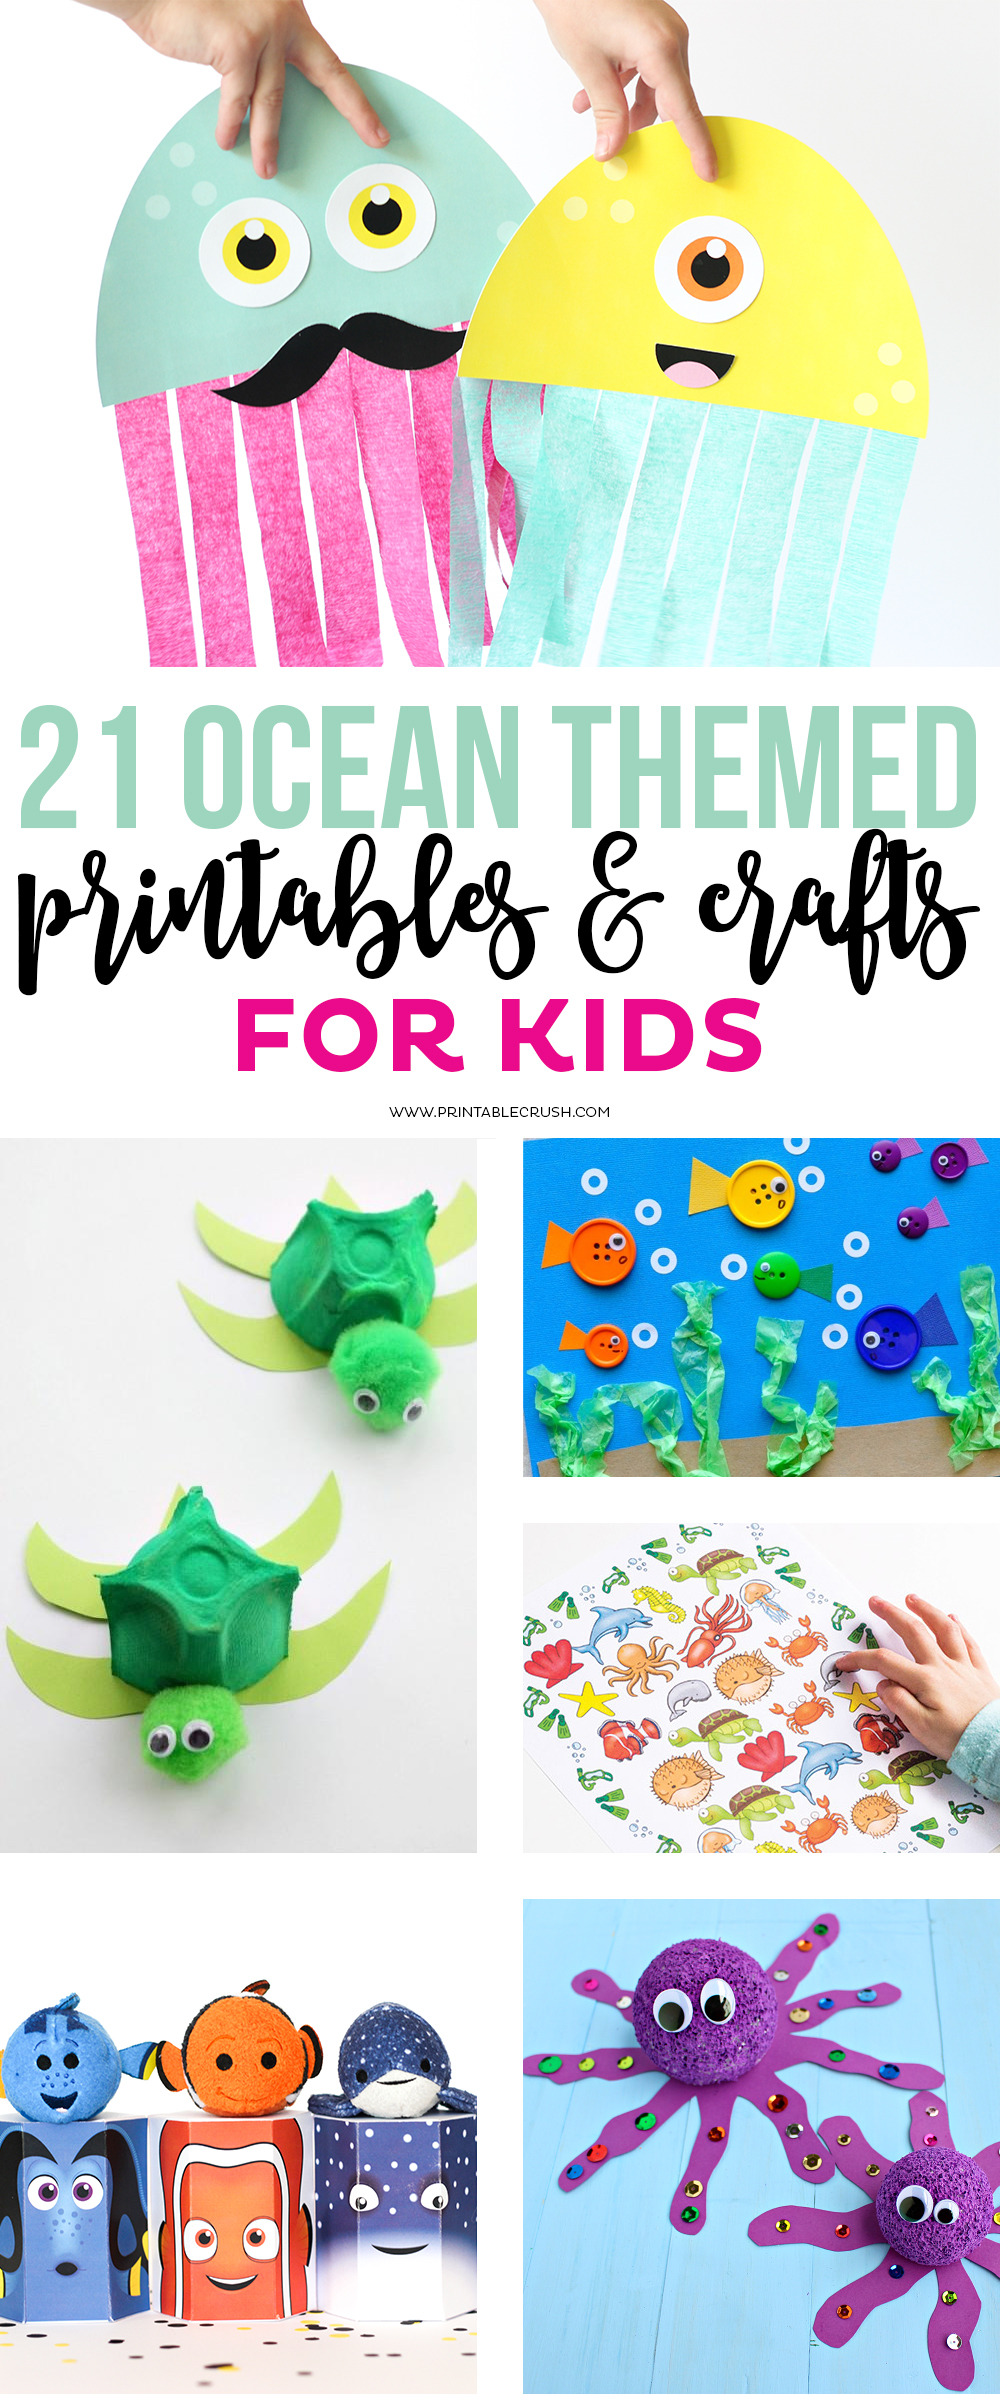 Check out these 21 Ocean Themed Printables and Crafts for Kids! These will be great for an ocean themed party!